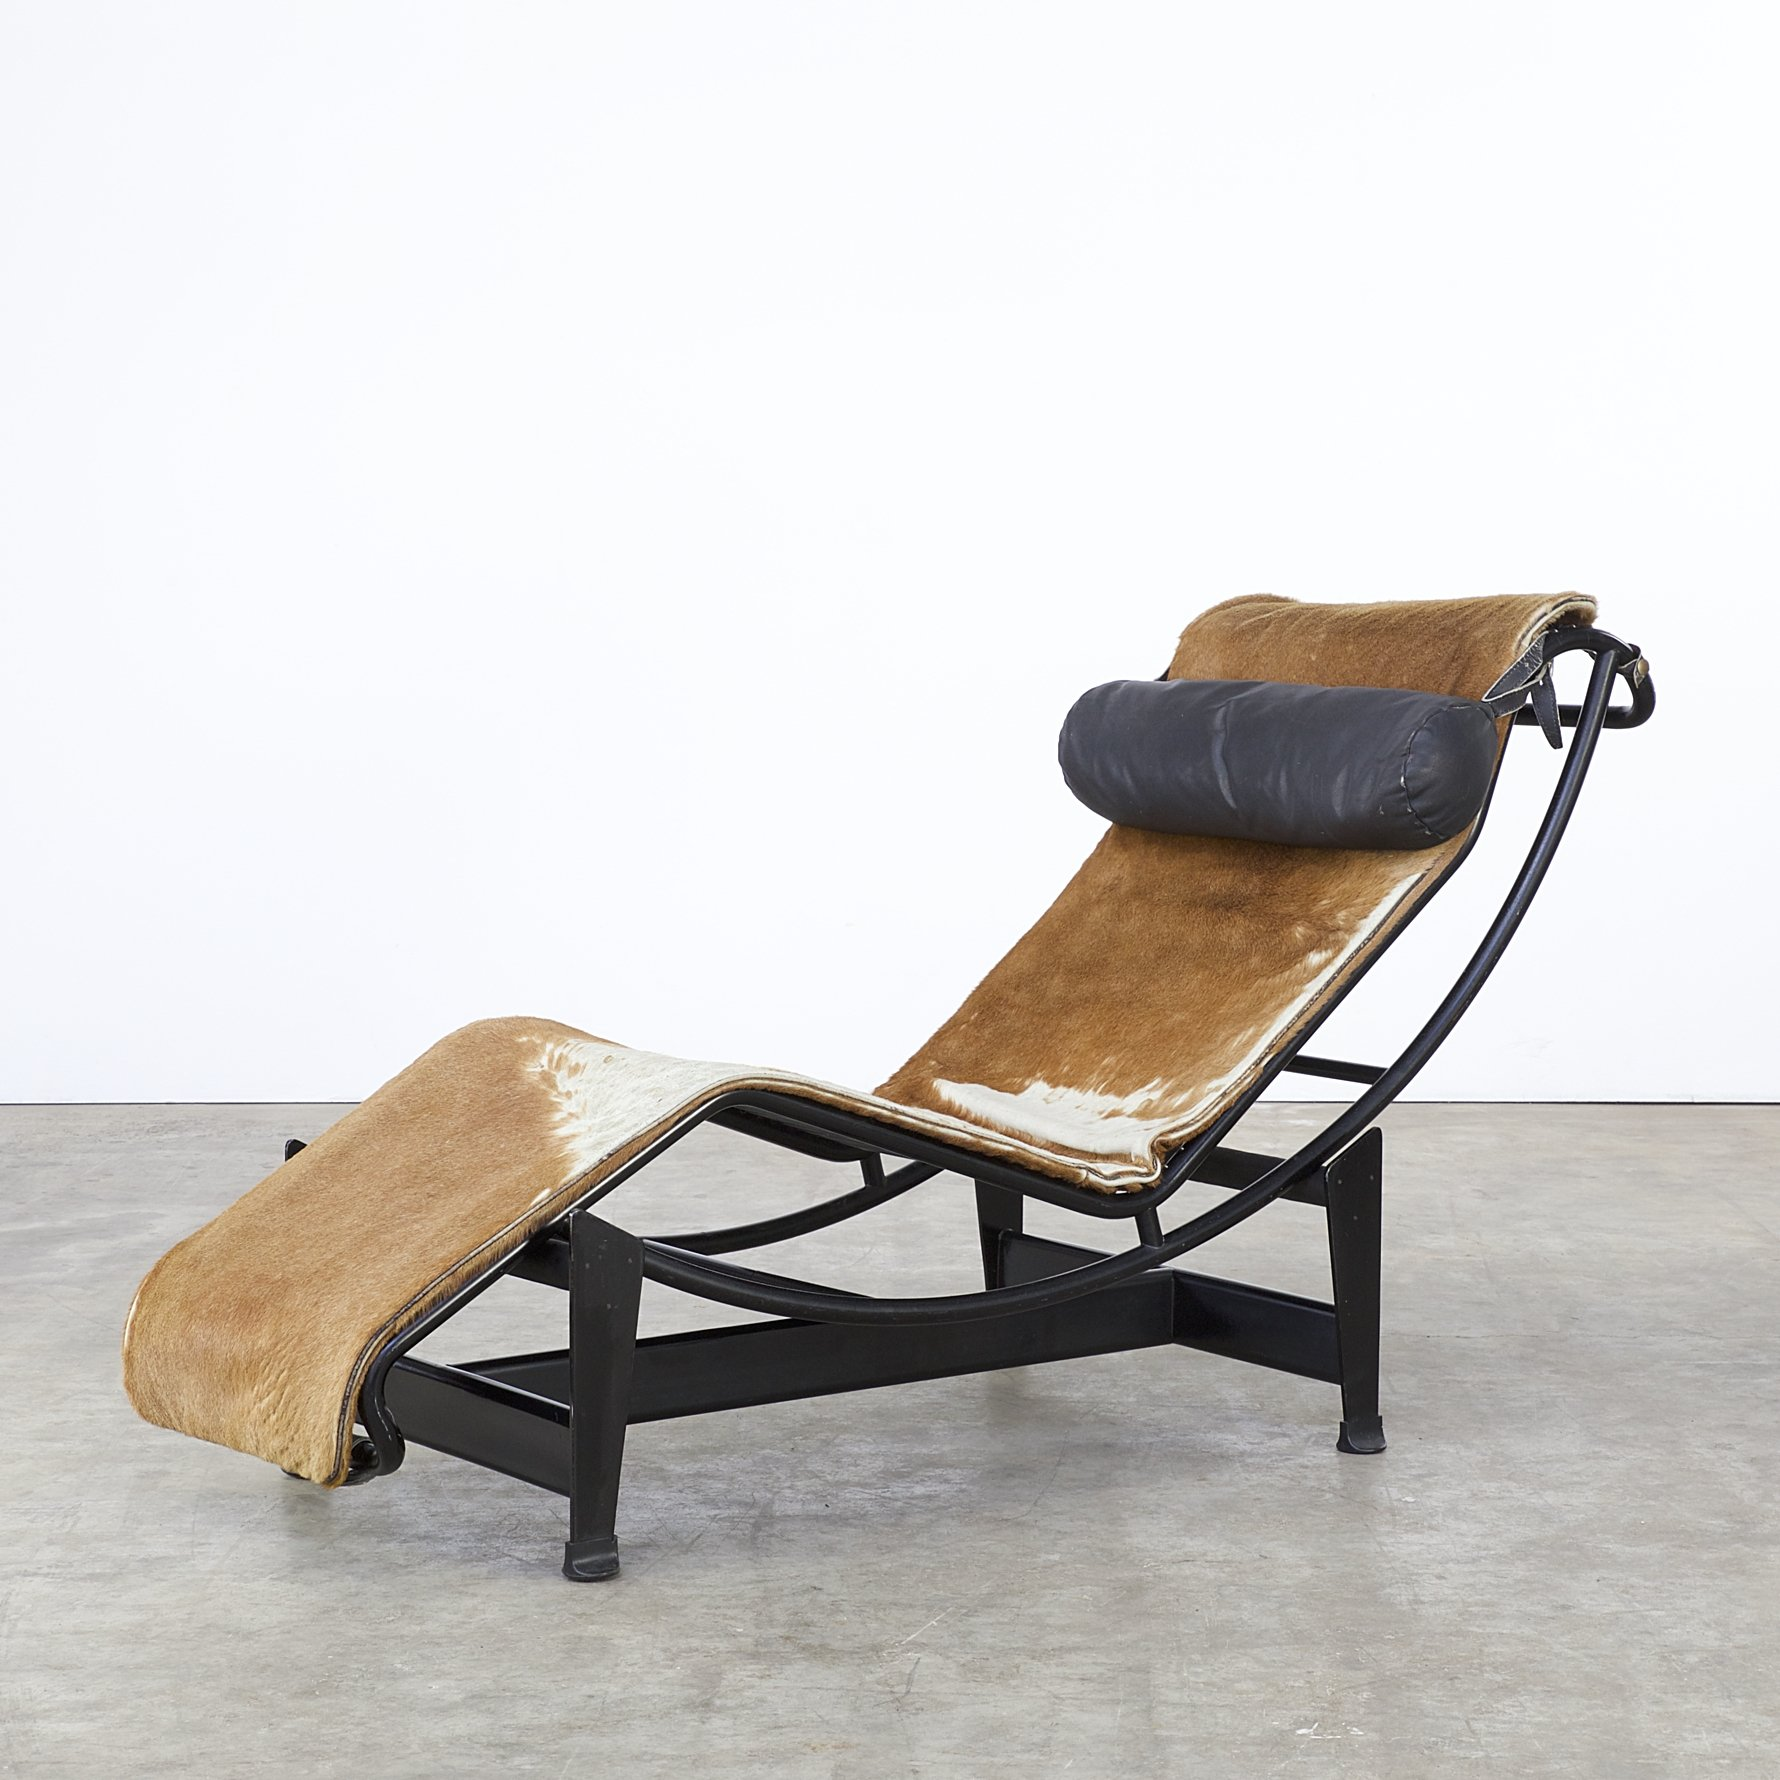 lc4 lounge chair by le corbusier charlotte perriand. Black Bedroom Furniture Sets. Home Design Ideas